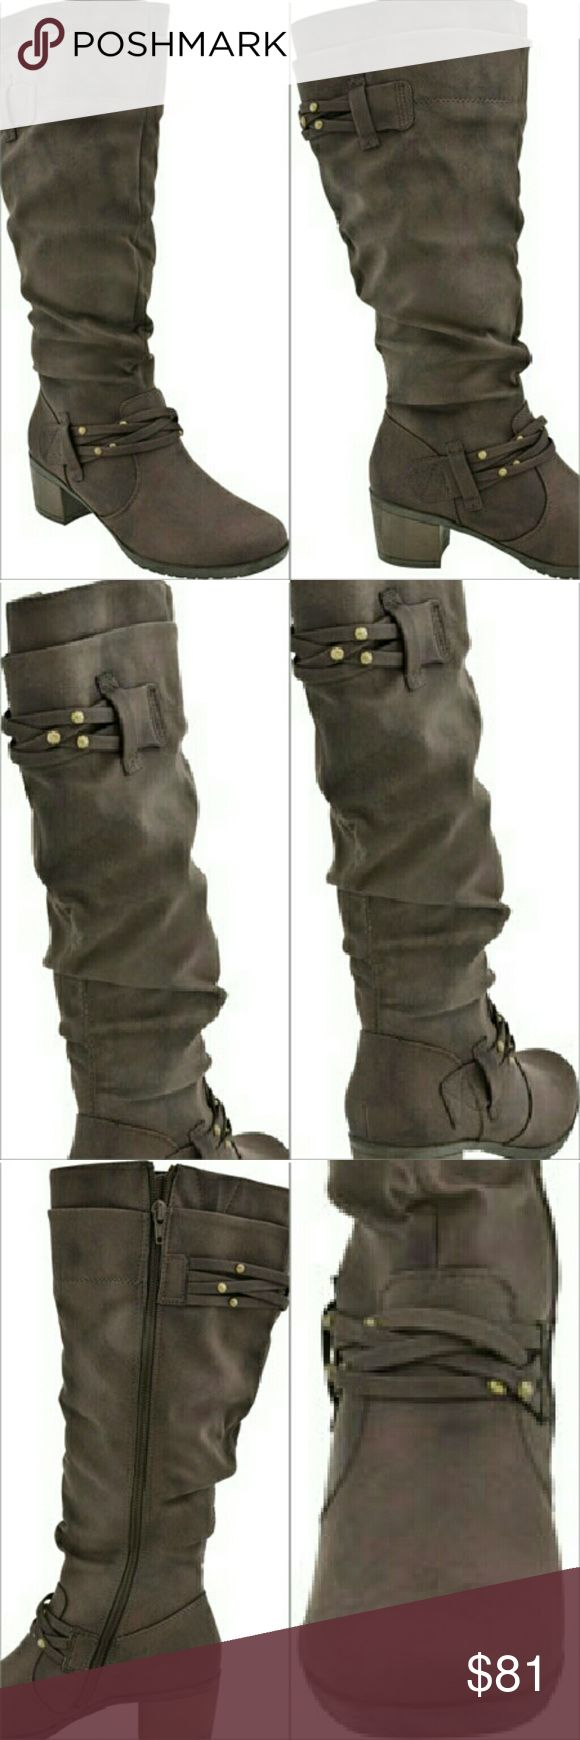 NWT White Mountain Suede knee high boots White Mountain Suede knee high boots.Gorgeous detailing at ankle and shaft. 2 1/2 heel. Brand new in box! White Mountain Shoes Heeled Boots